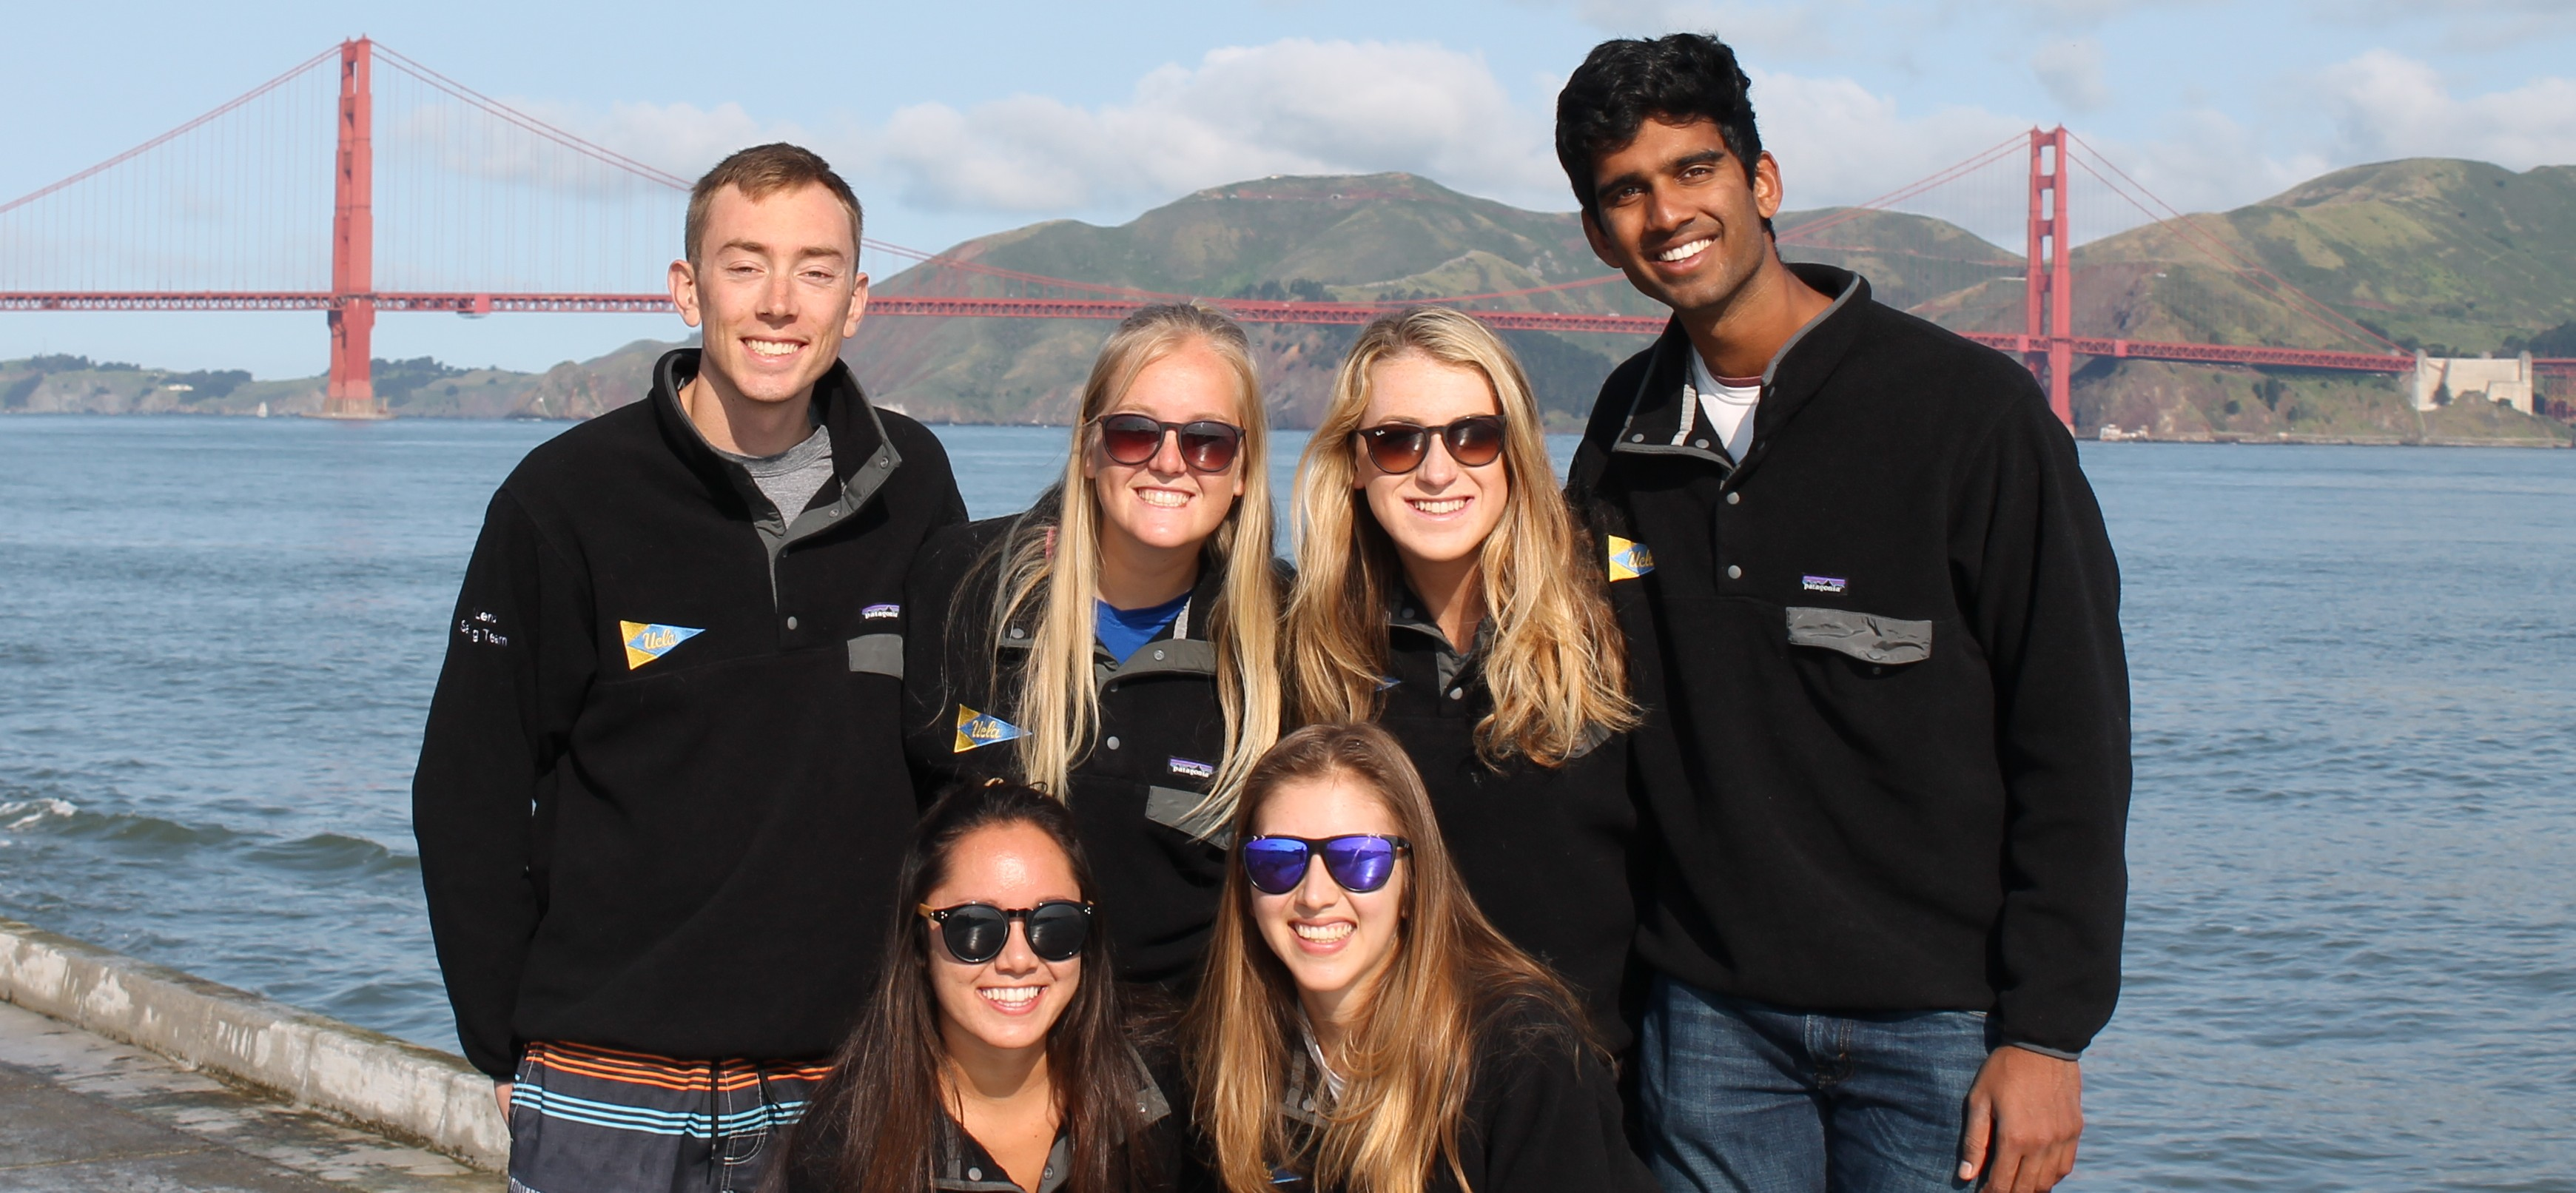 Bruins at the 2017 St. Francis regatta.  Back row (left to right):  Nicholas Lenz('19), Kylie Sullivan ('17), Maddy Kuhn ('20), and Arjun Boddu ('18)  Front: Leah Ford ('19), Laura Roudebush ('18)